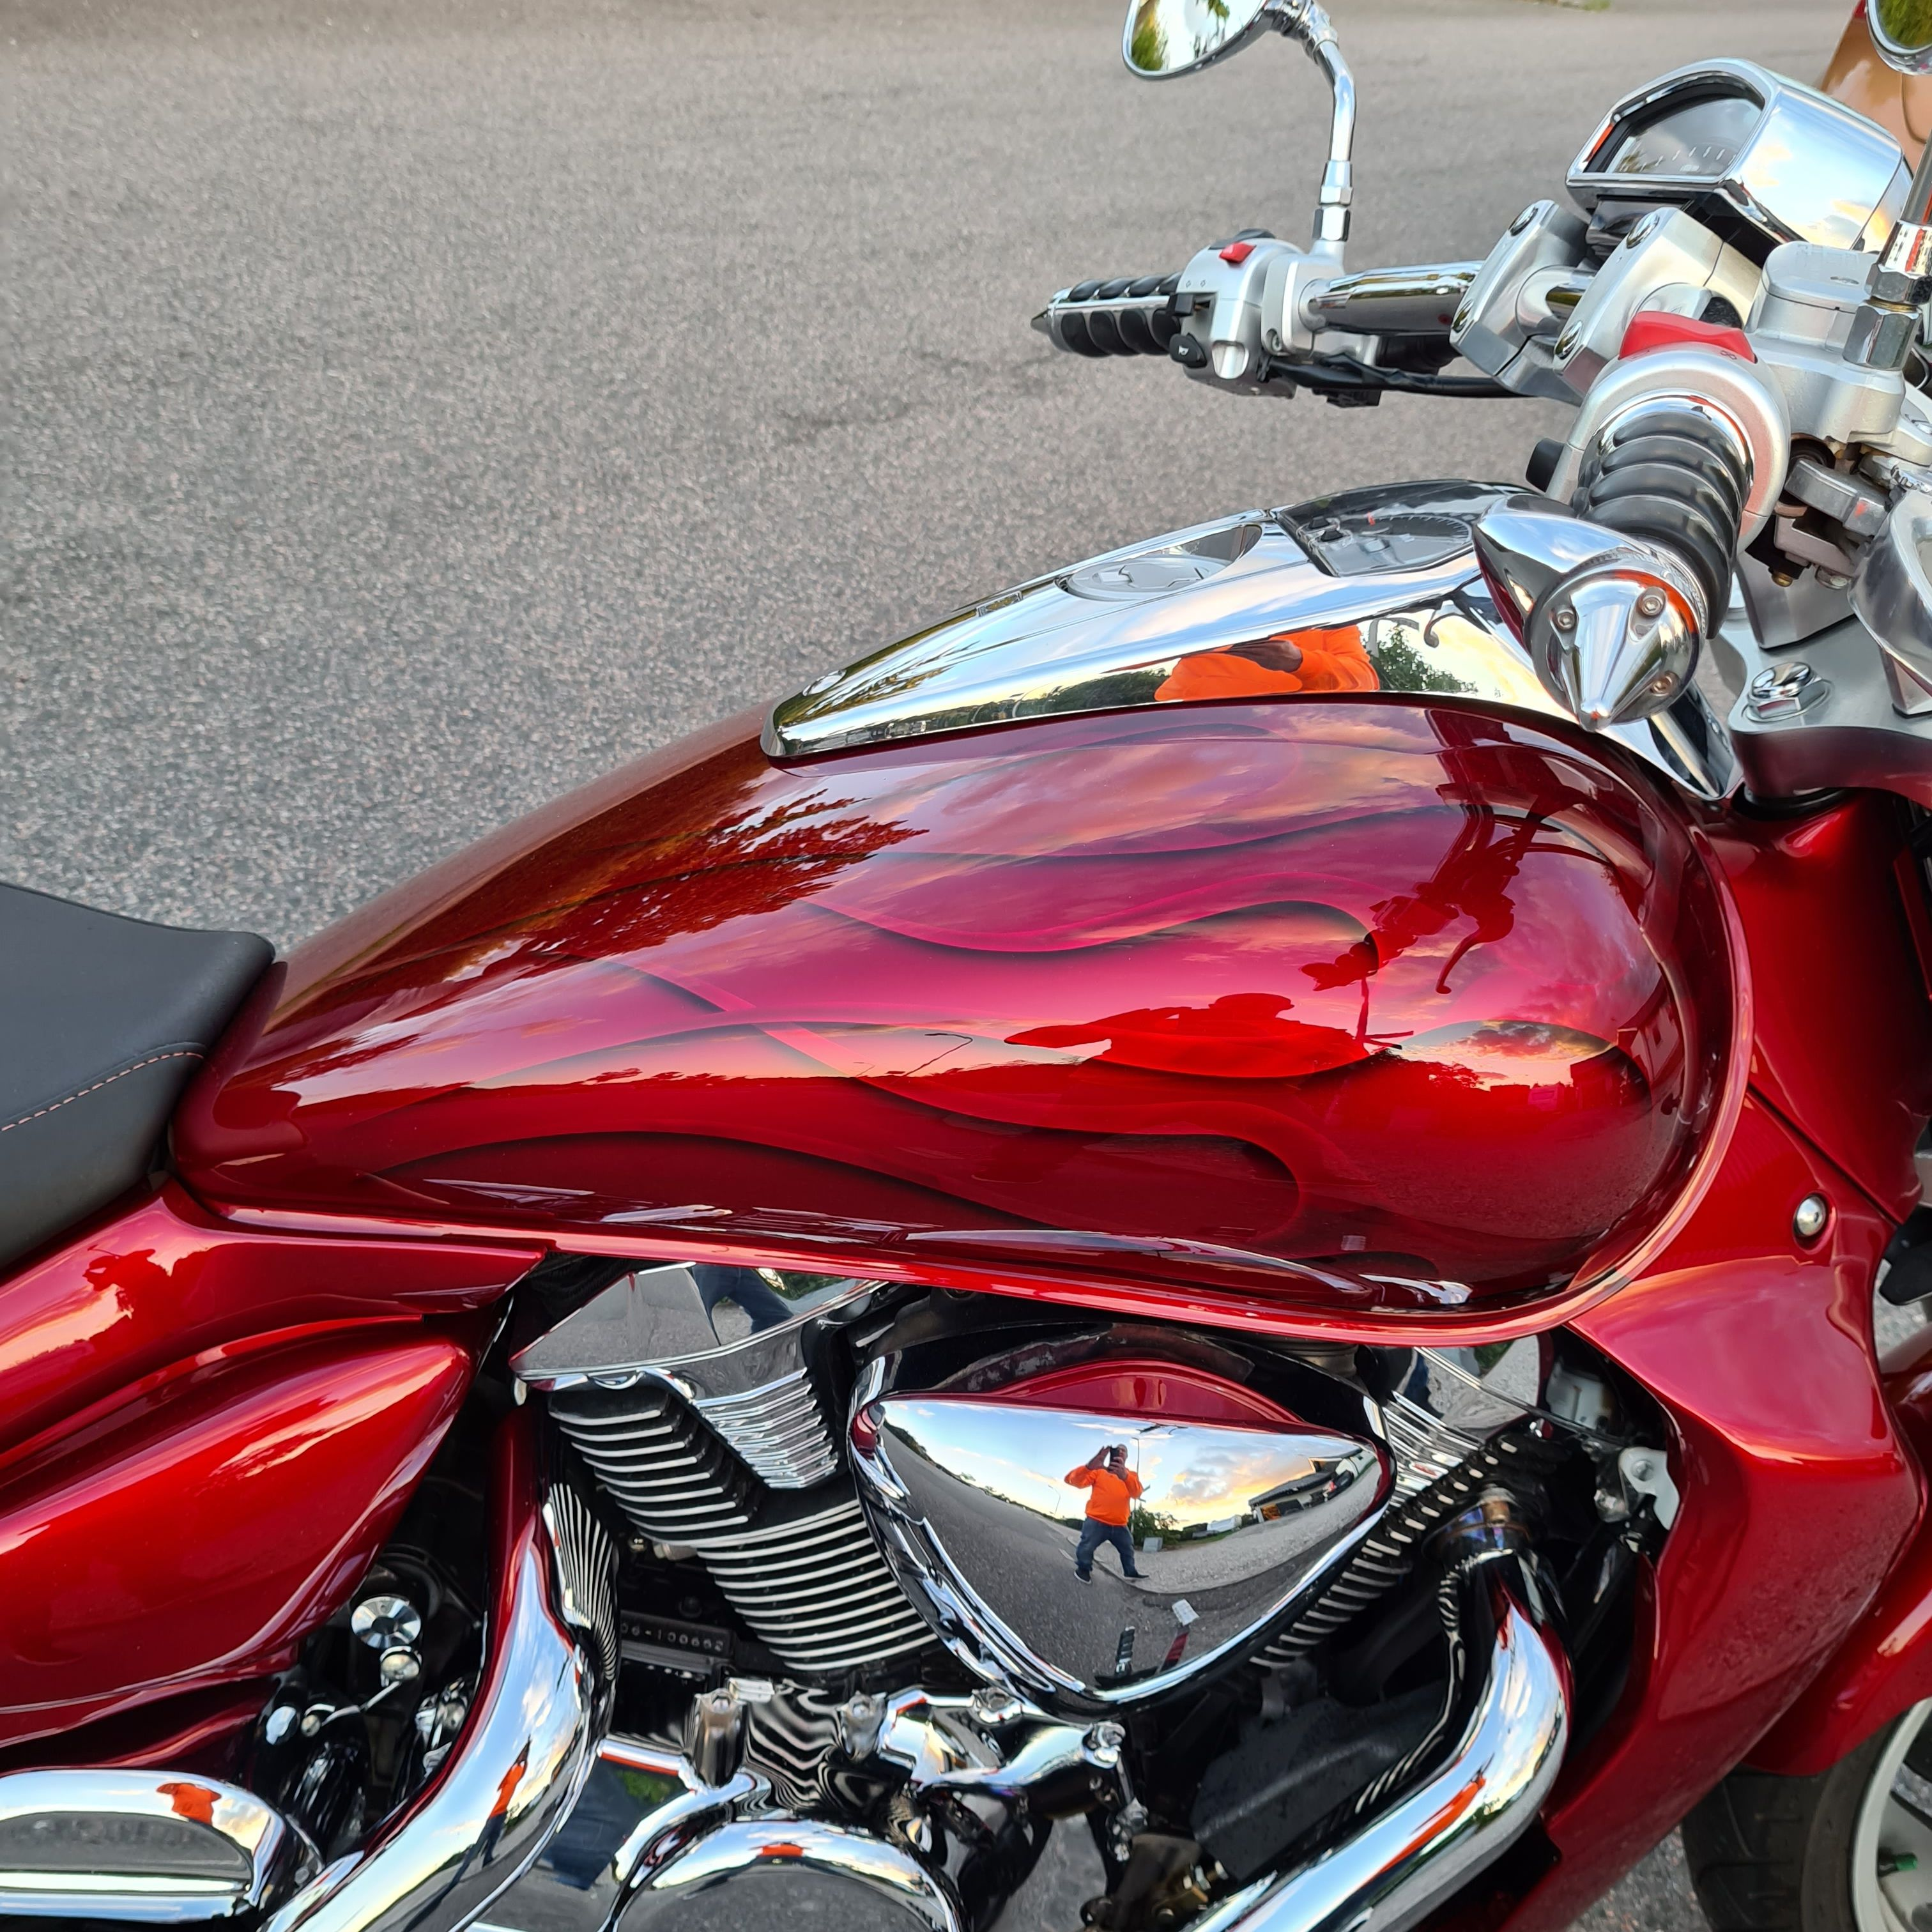 Suzuki Intruder m1800r red candy ghost classic flames 19